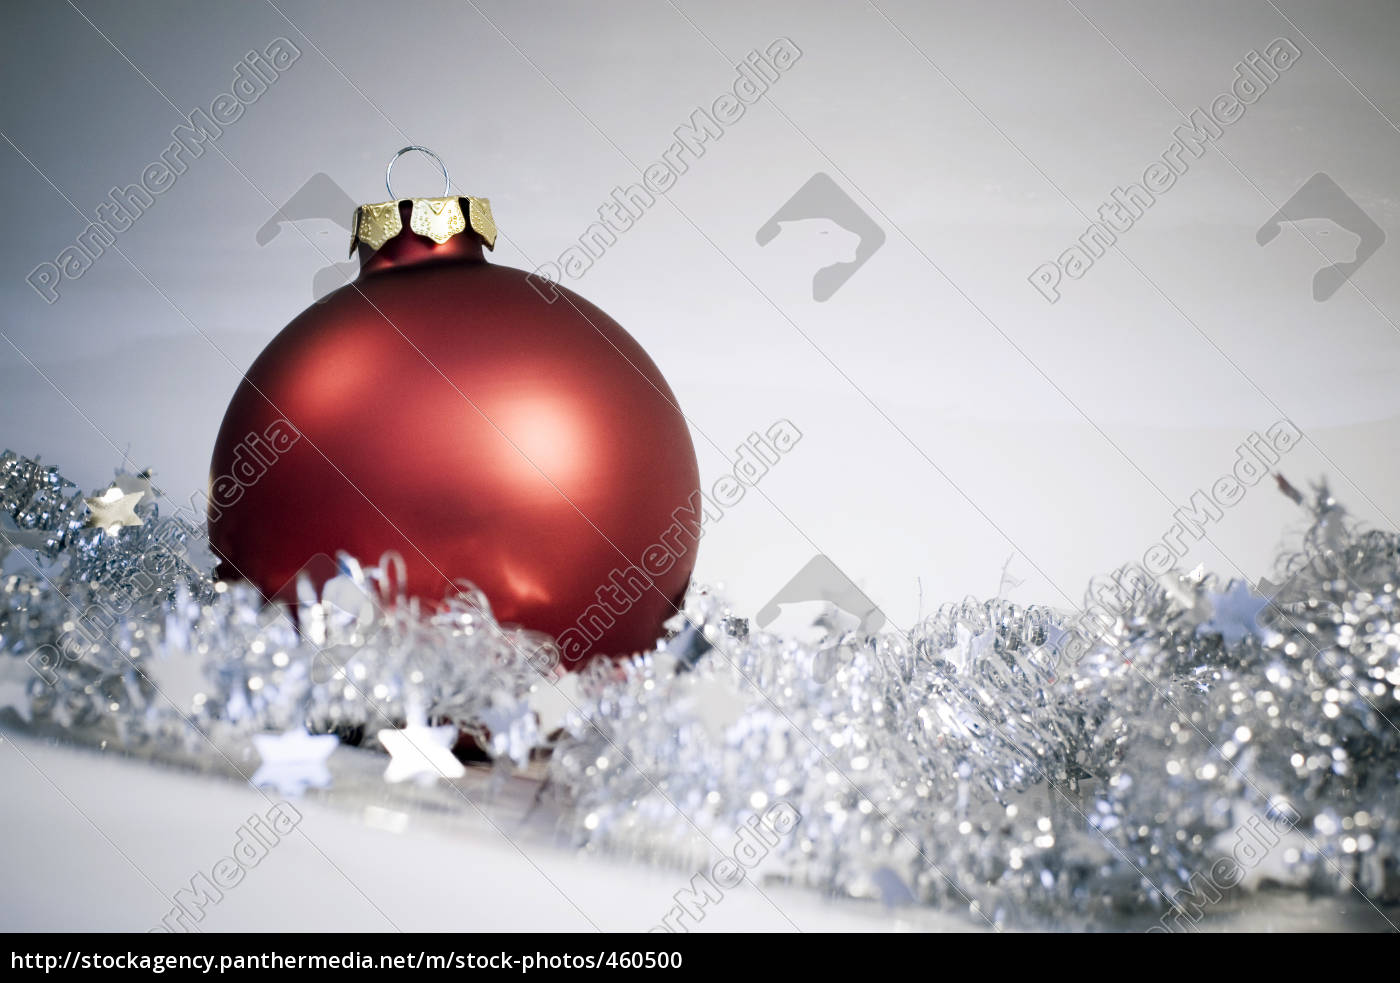 christmas, ball, red - 460500